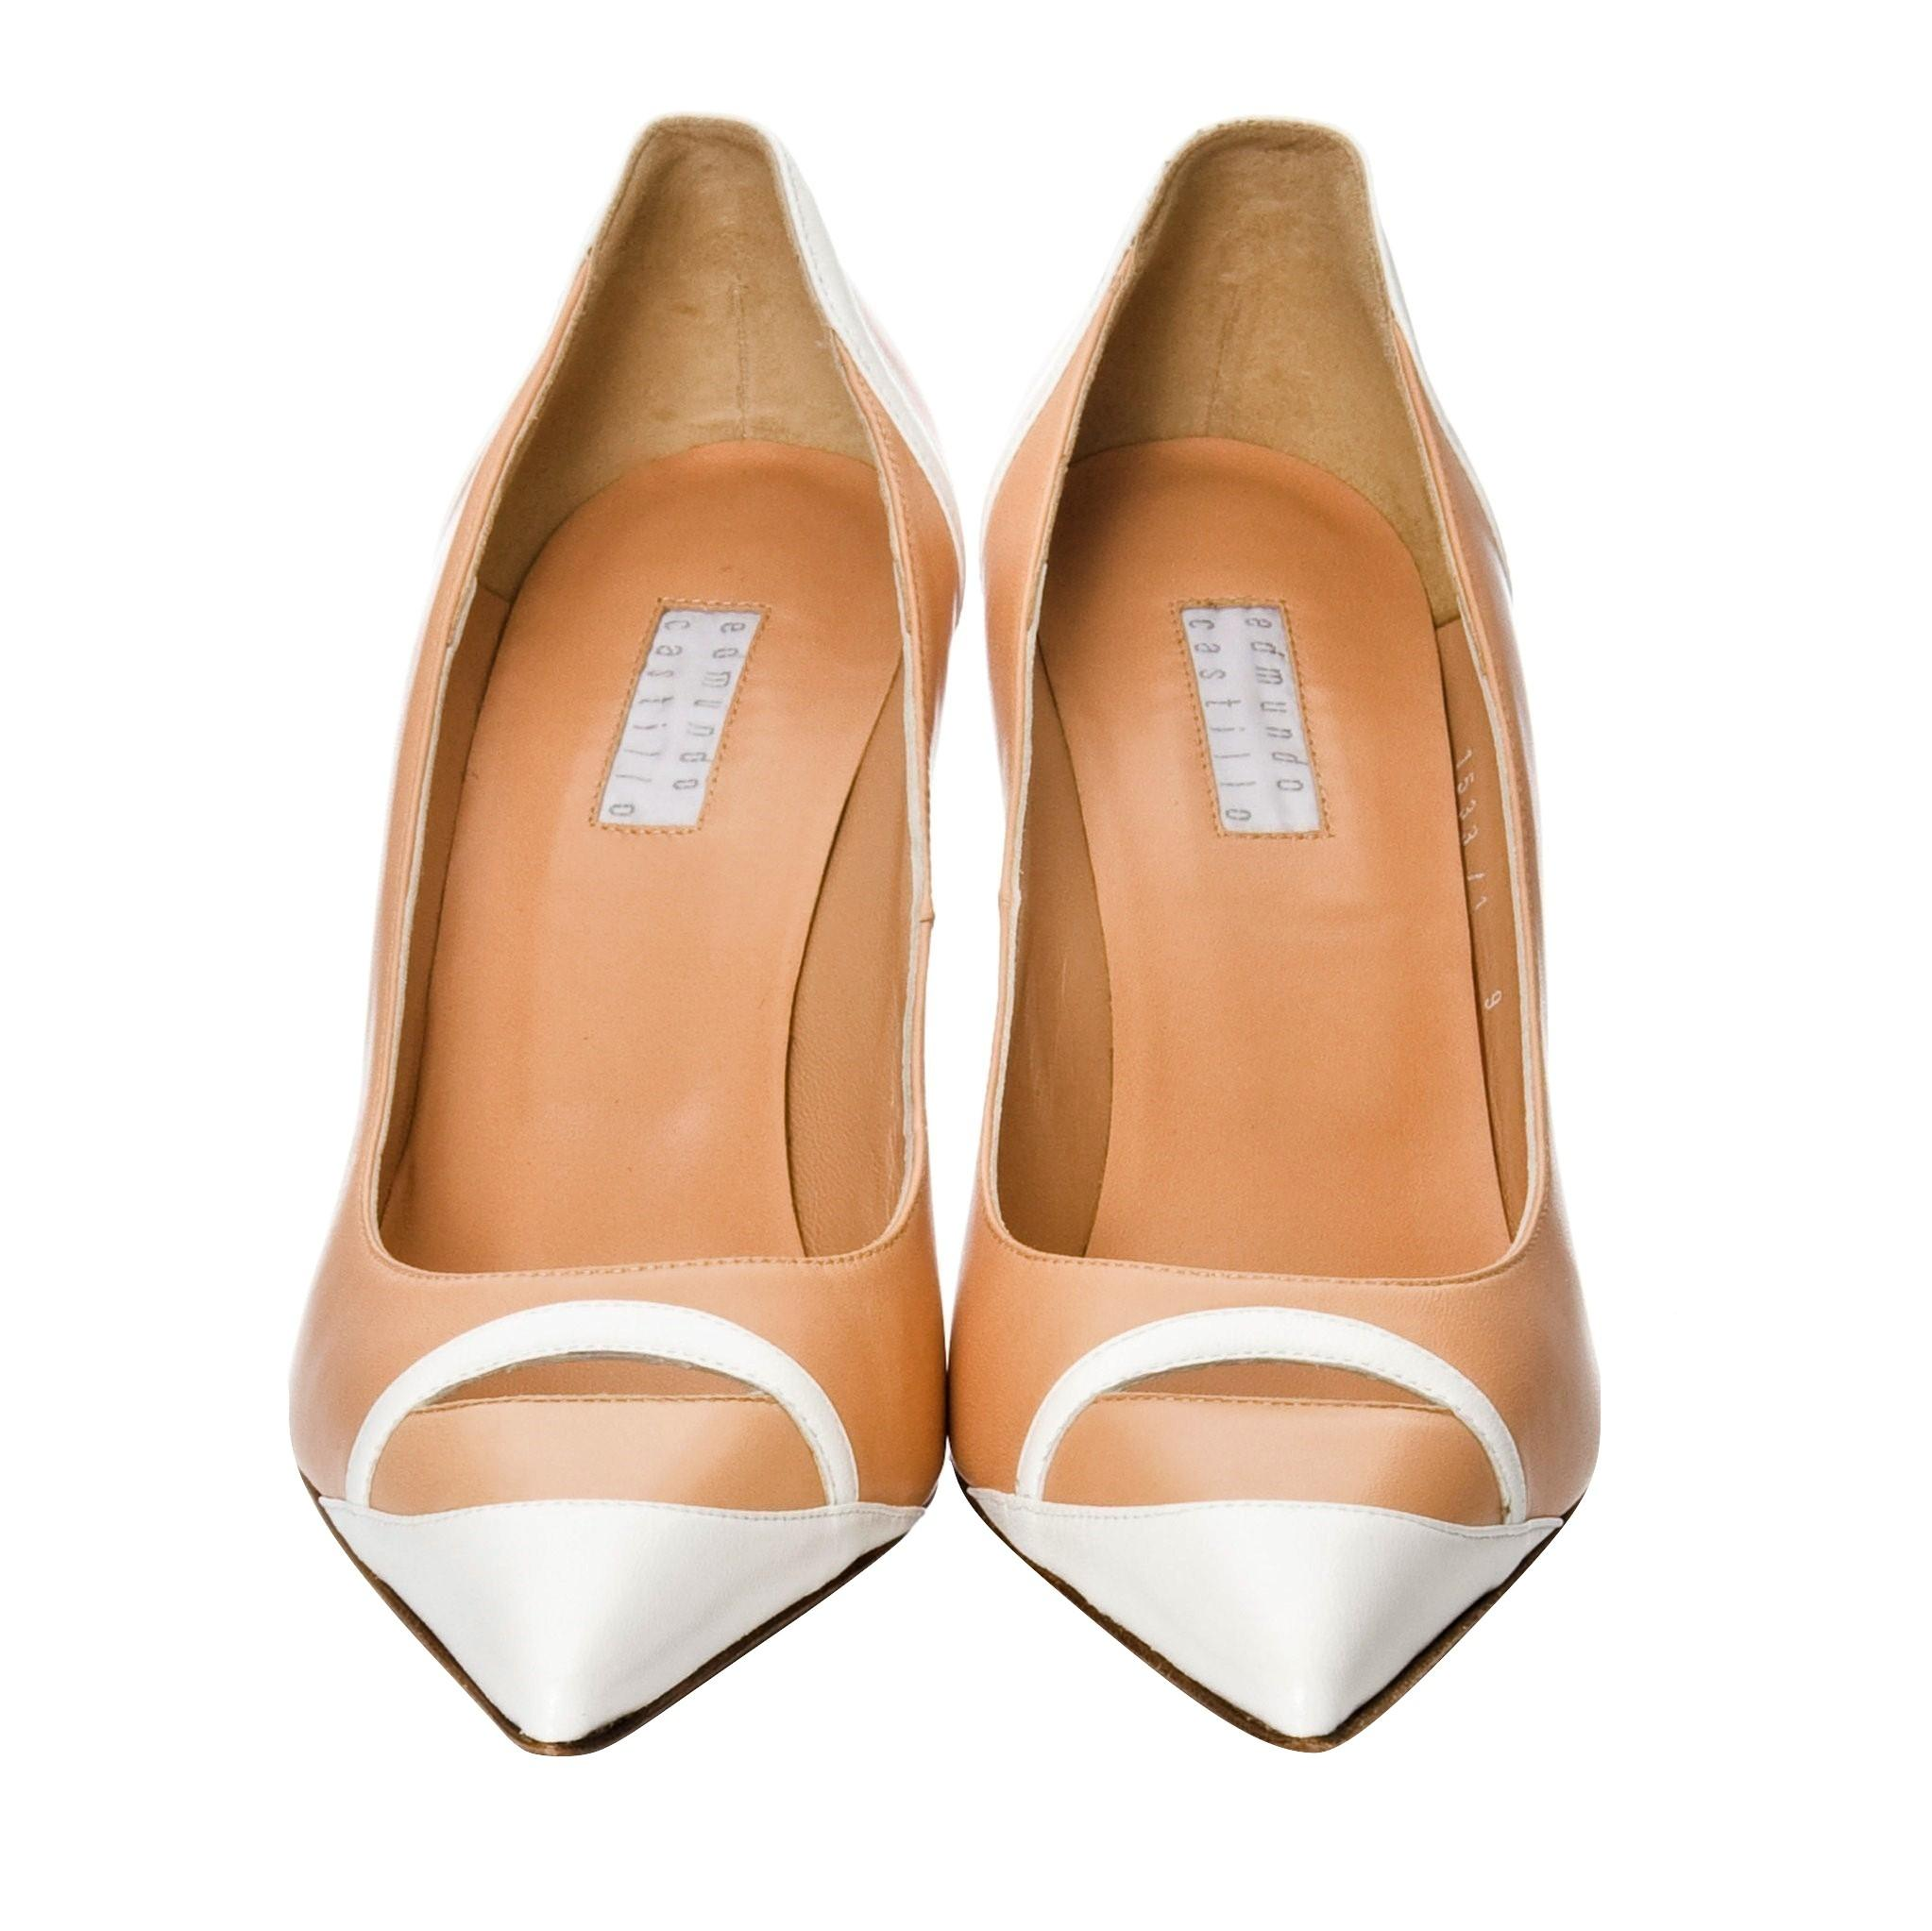 Edmundo Castillo New Rare Peach and White Leather Pumps Size US 9 Regular (M, B)